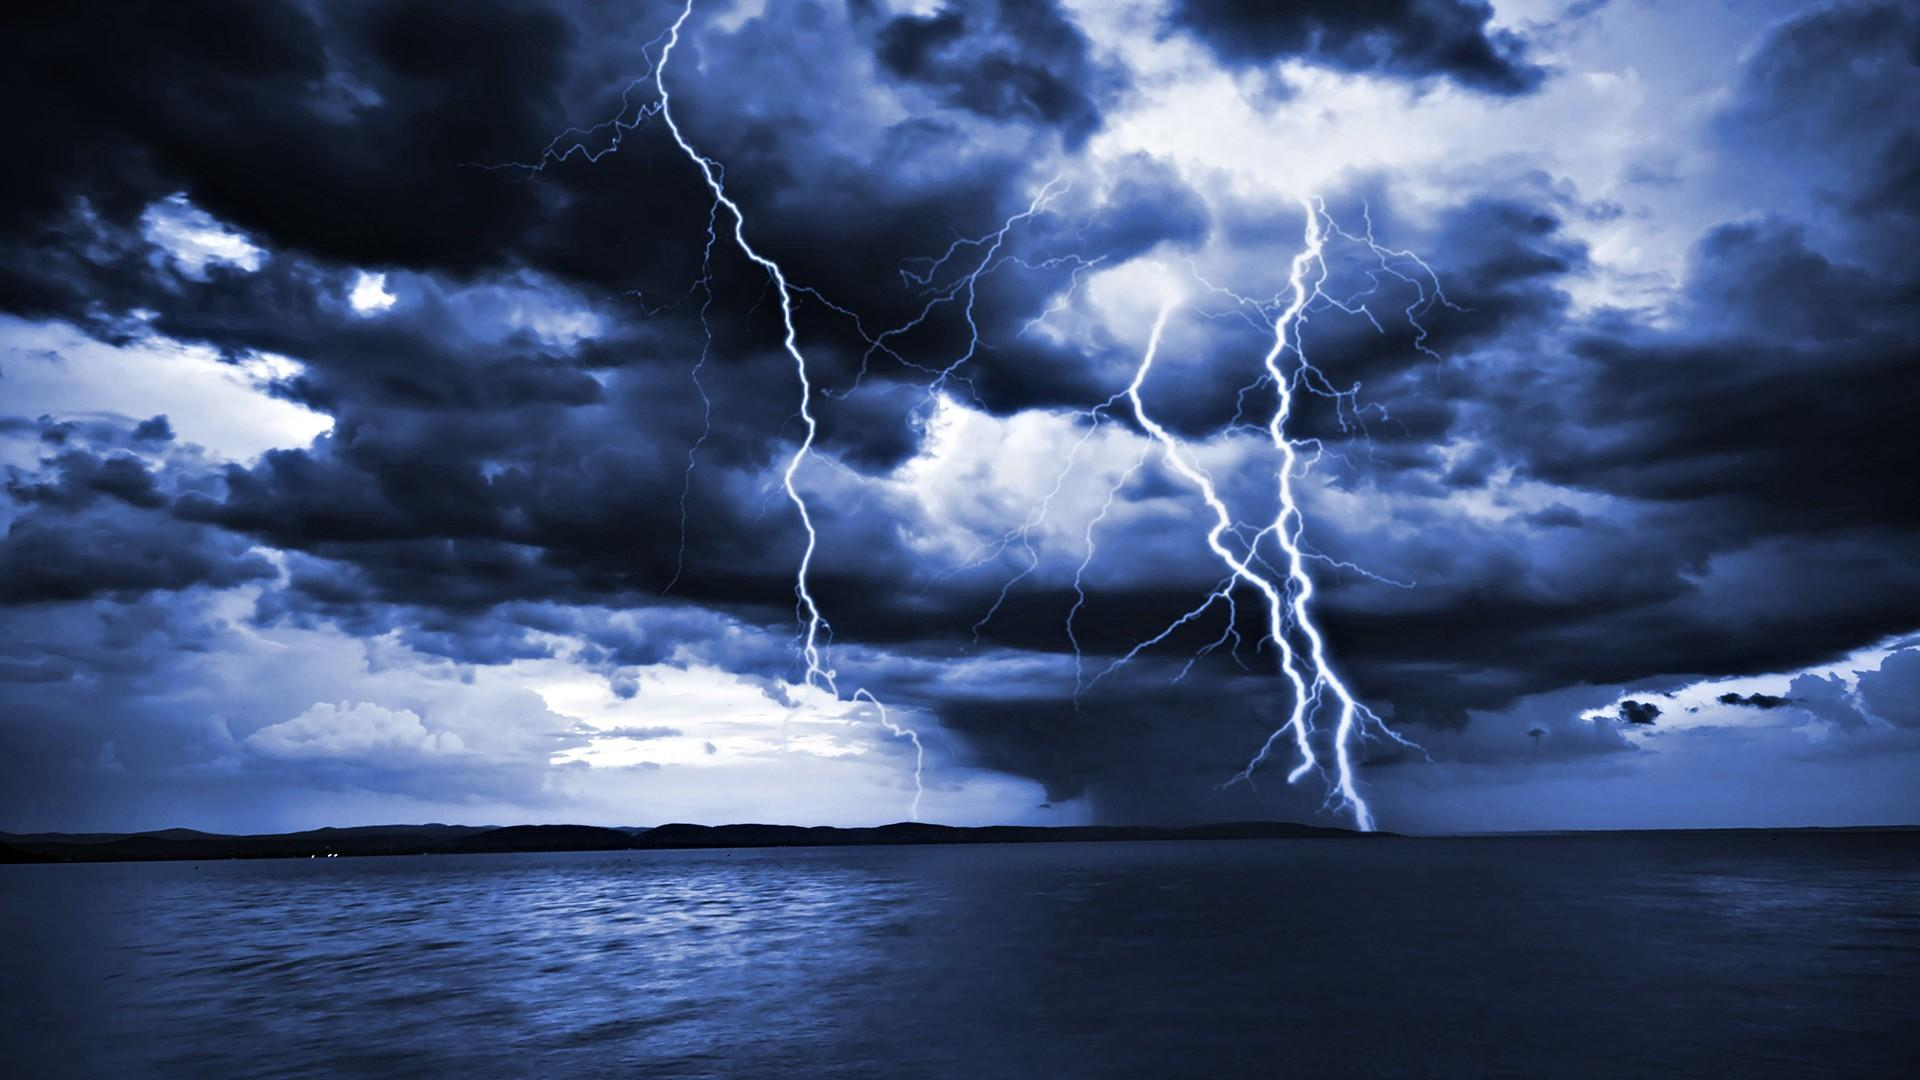 Sea Storm Live Wallpaper For Android Apk Download